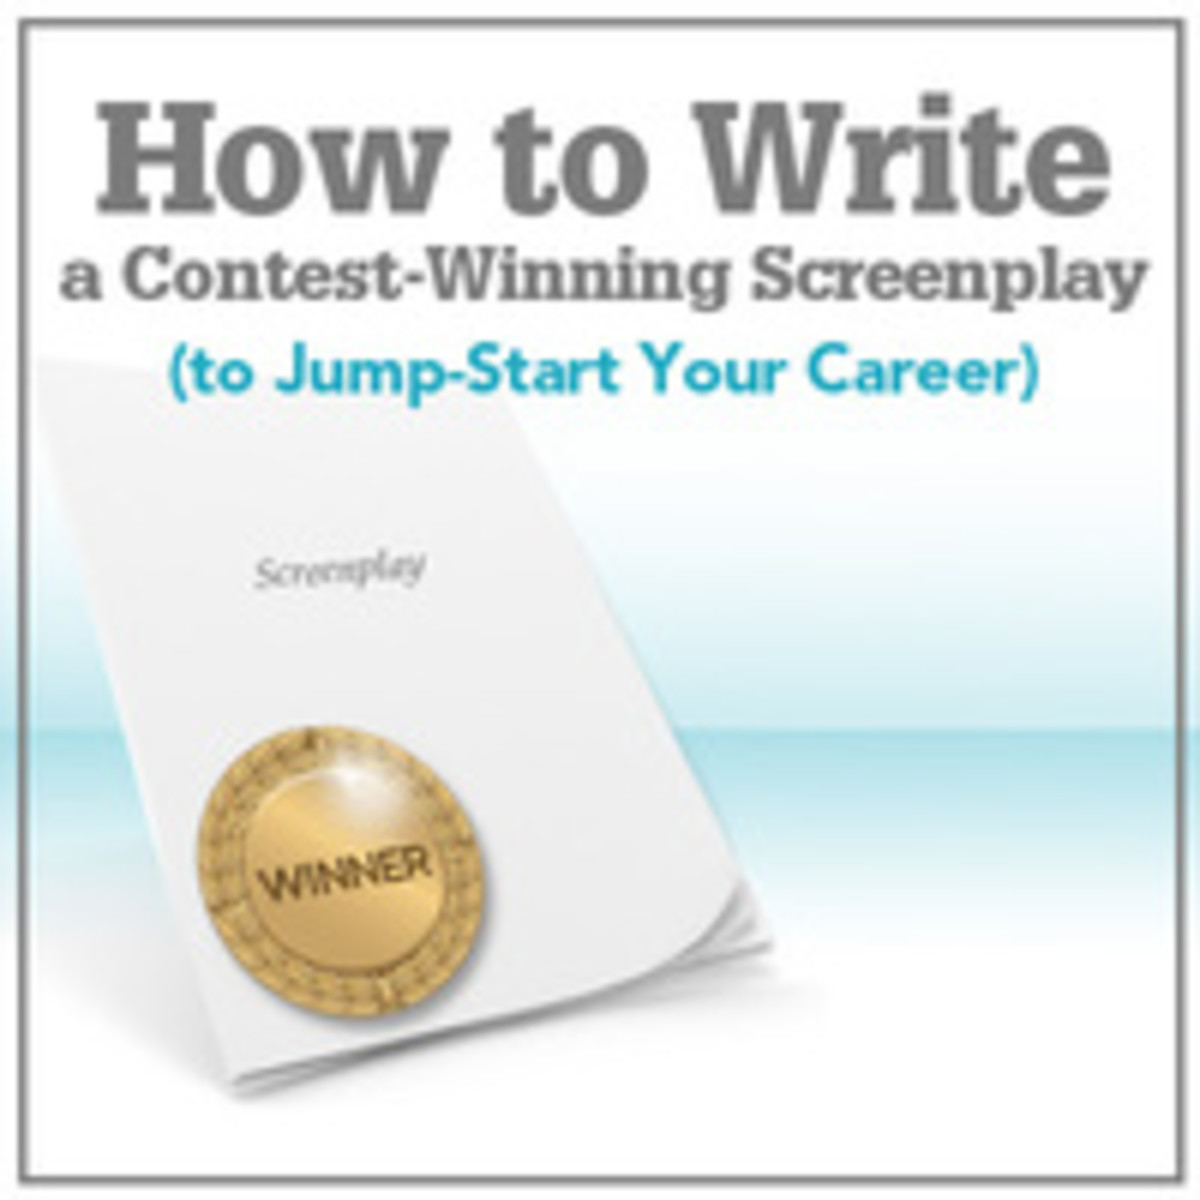 How to Write a Contest-Winning Screenplay To Jump-Start Your Career